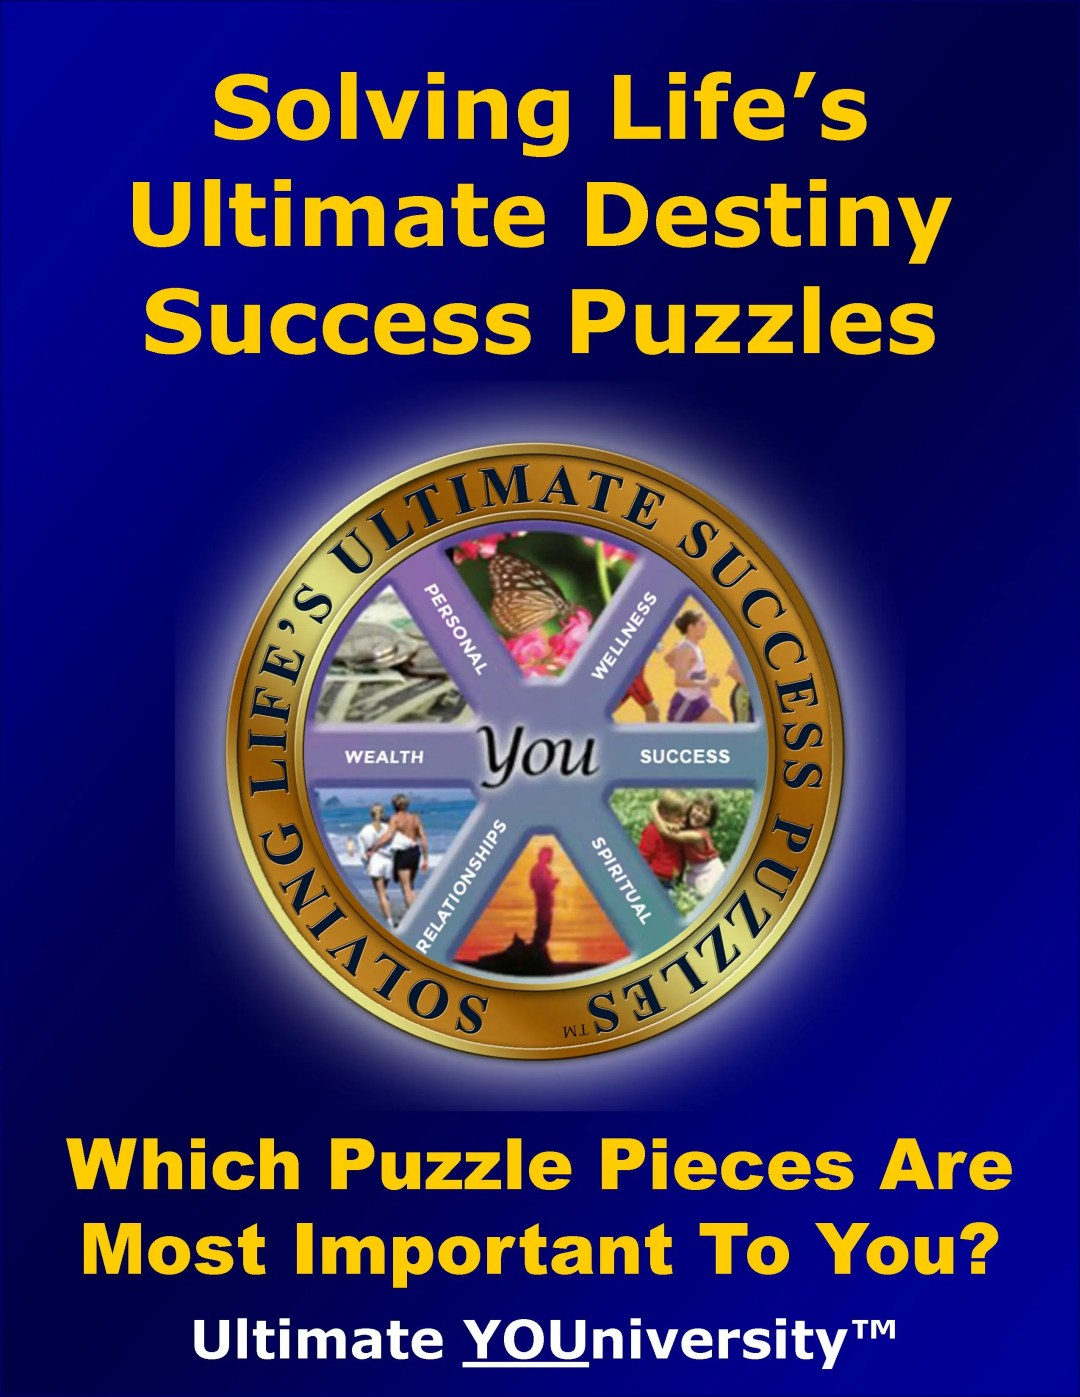 Solving Life's Ultimate Success Puzzles - One of the 14 Categories